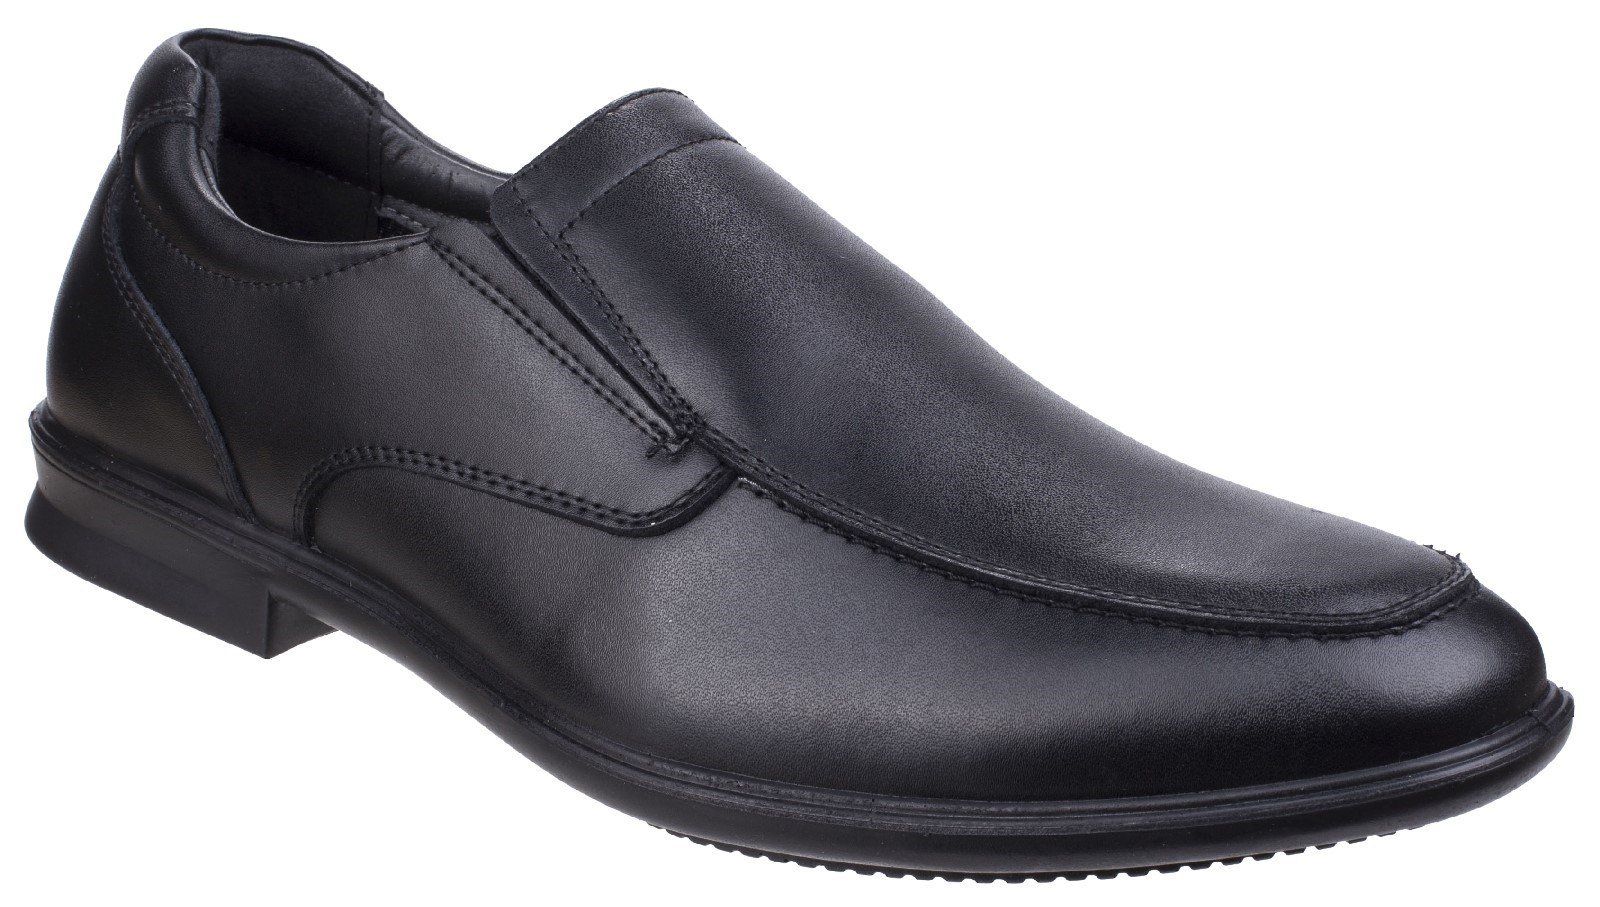 HUSH PUPPIES Cale black slip on leather loafer smart shoes size 6-12